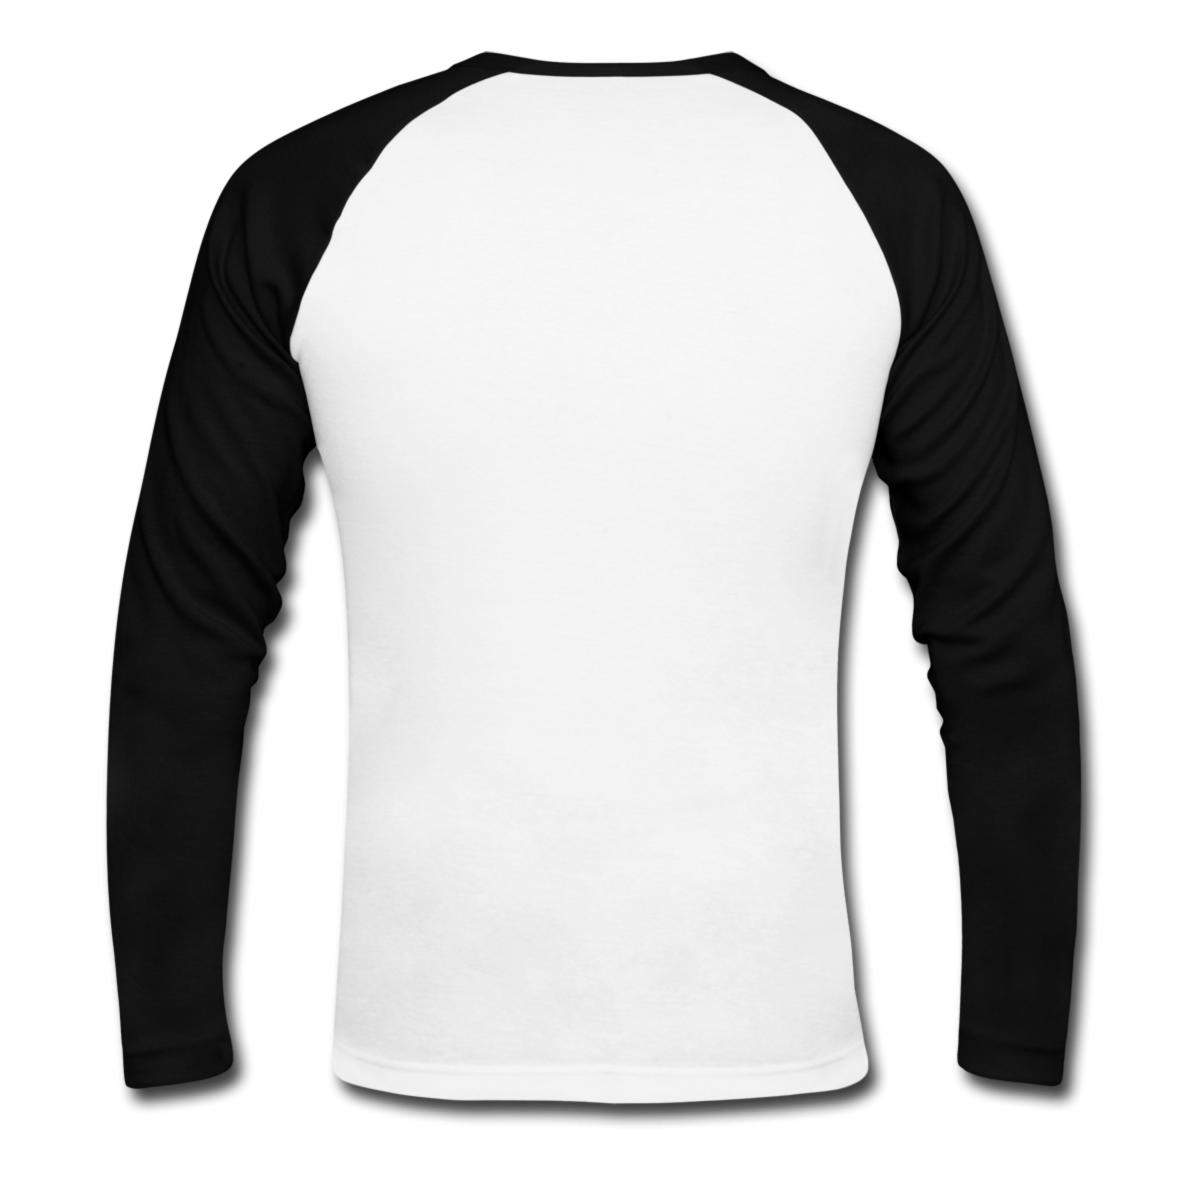 Baseball shirt clipart clipart free download Blank T Shirt Silhouette at GetDrawings.com | Free for personal use ... clipart free download